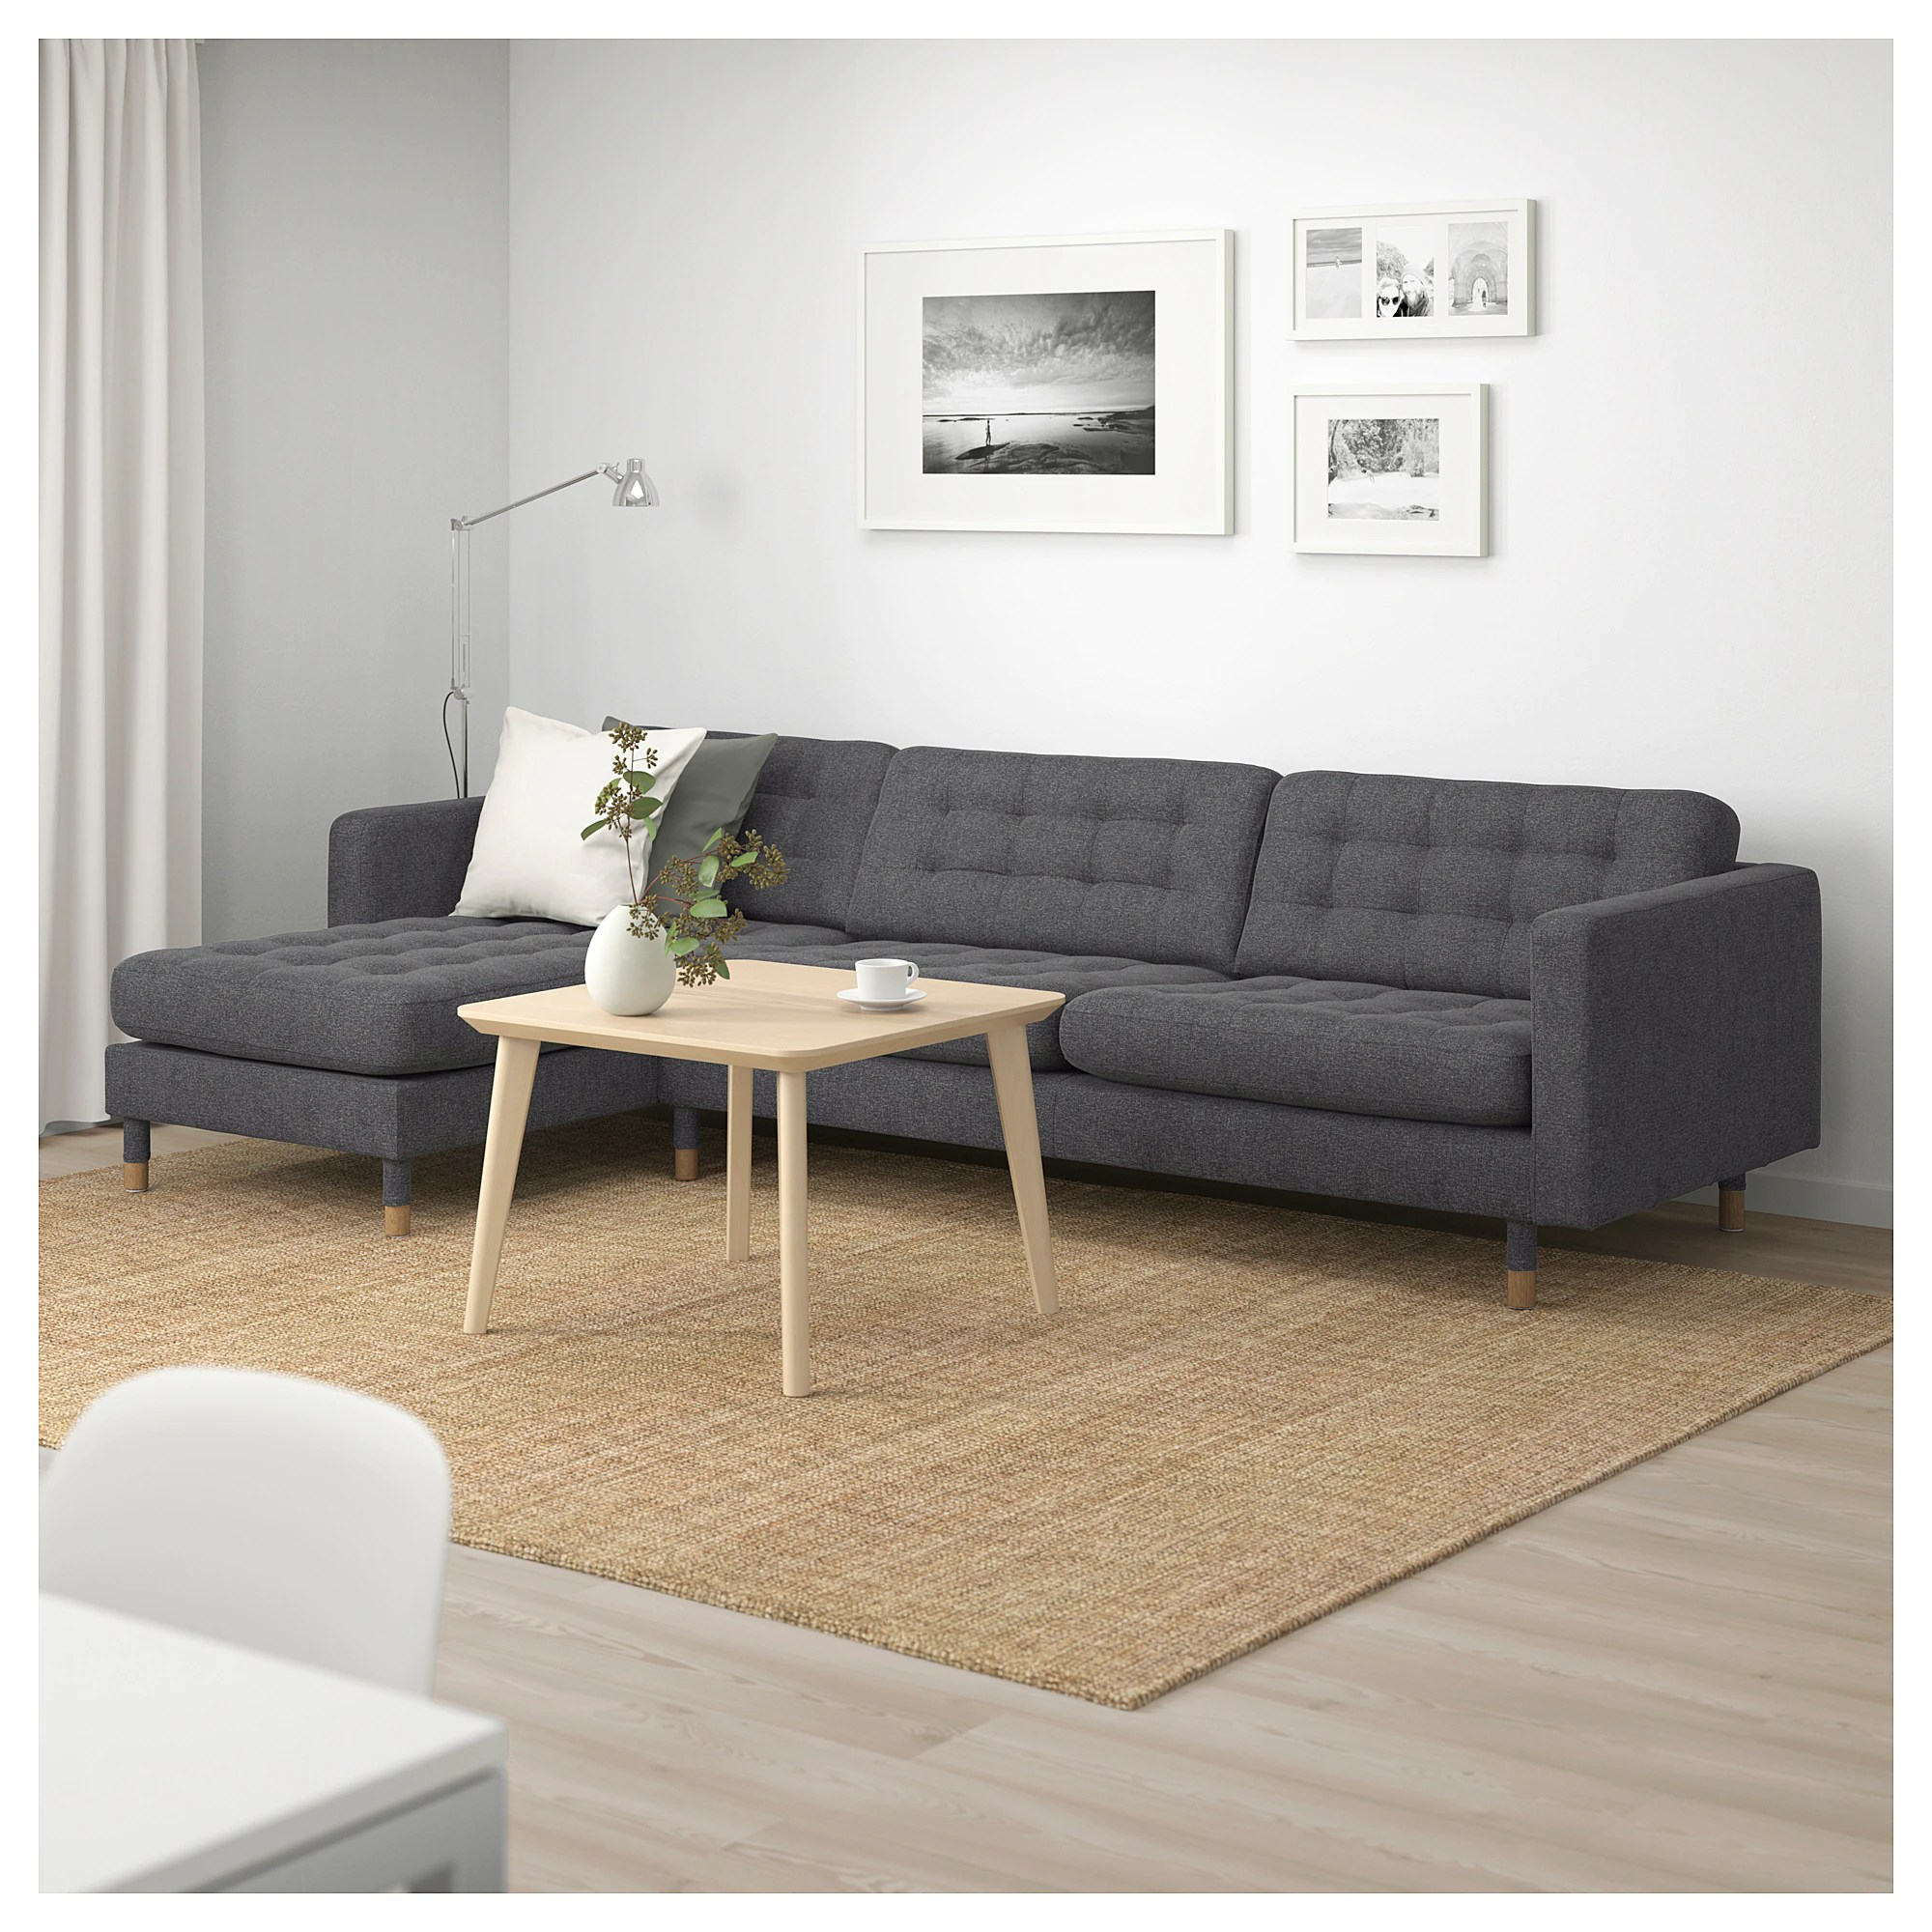 Ikea Sofa 4 Seater Landskrona Sectional 4 Seat With Chaise Gunnared Light Green Wood